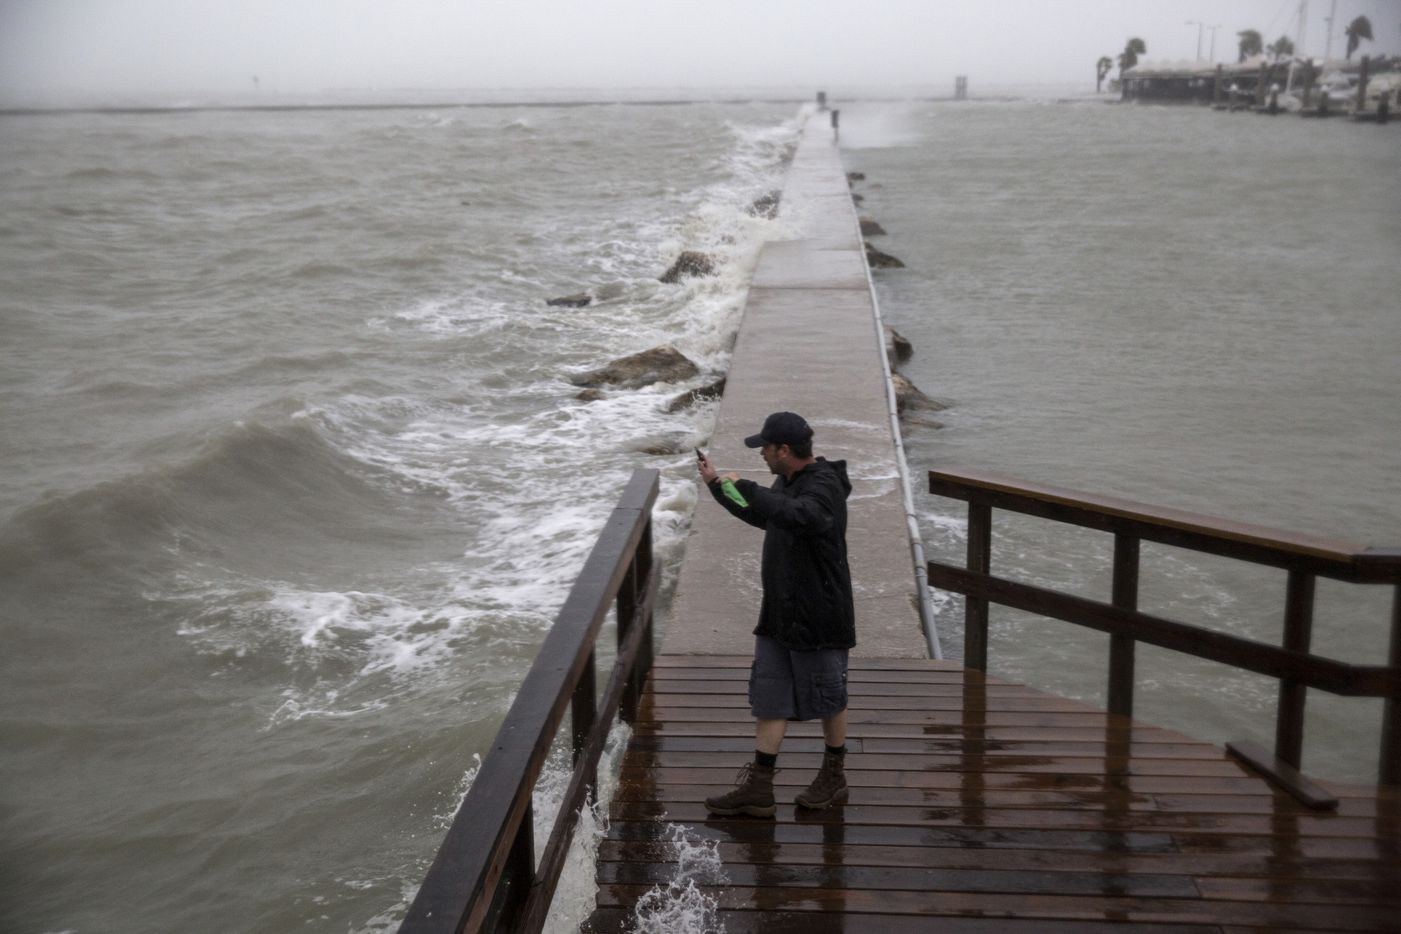 Jason Weingart, a storm chaser working for the Weather Channel, livestreams the effects of Hurricane Harvey in Corpus Christi, Texas, Aug. 25, 2017. Harvey strengthened to a Category 4 storm on Friday evening as it approached the Texas Gulf Coast.